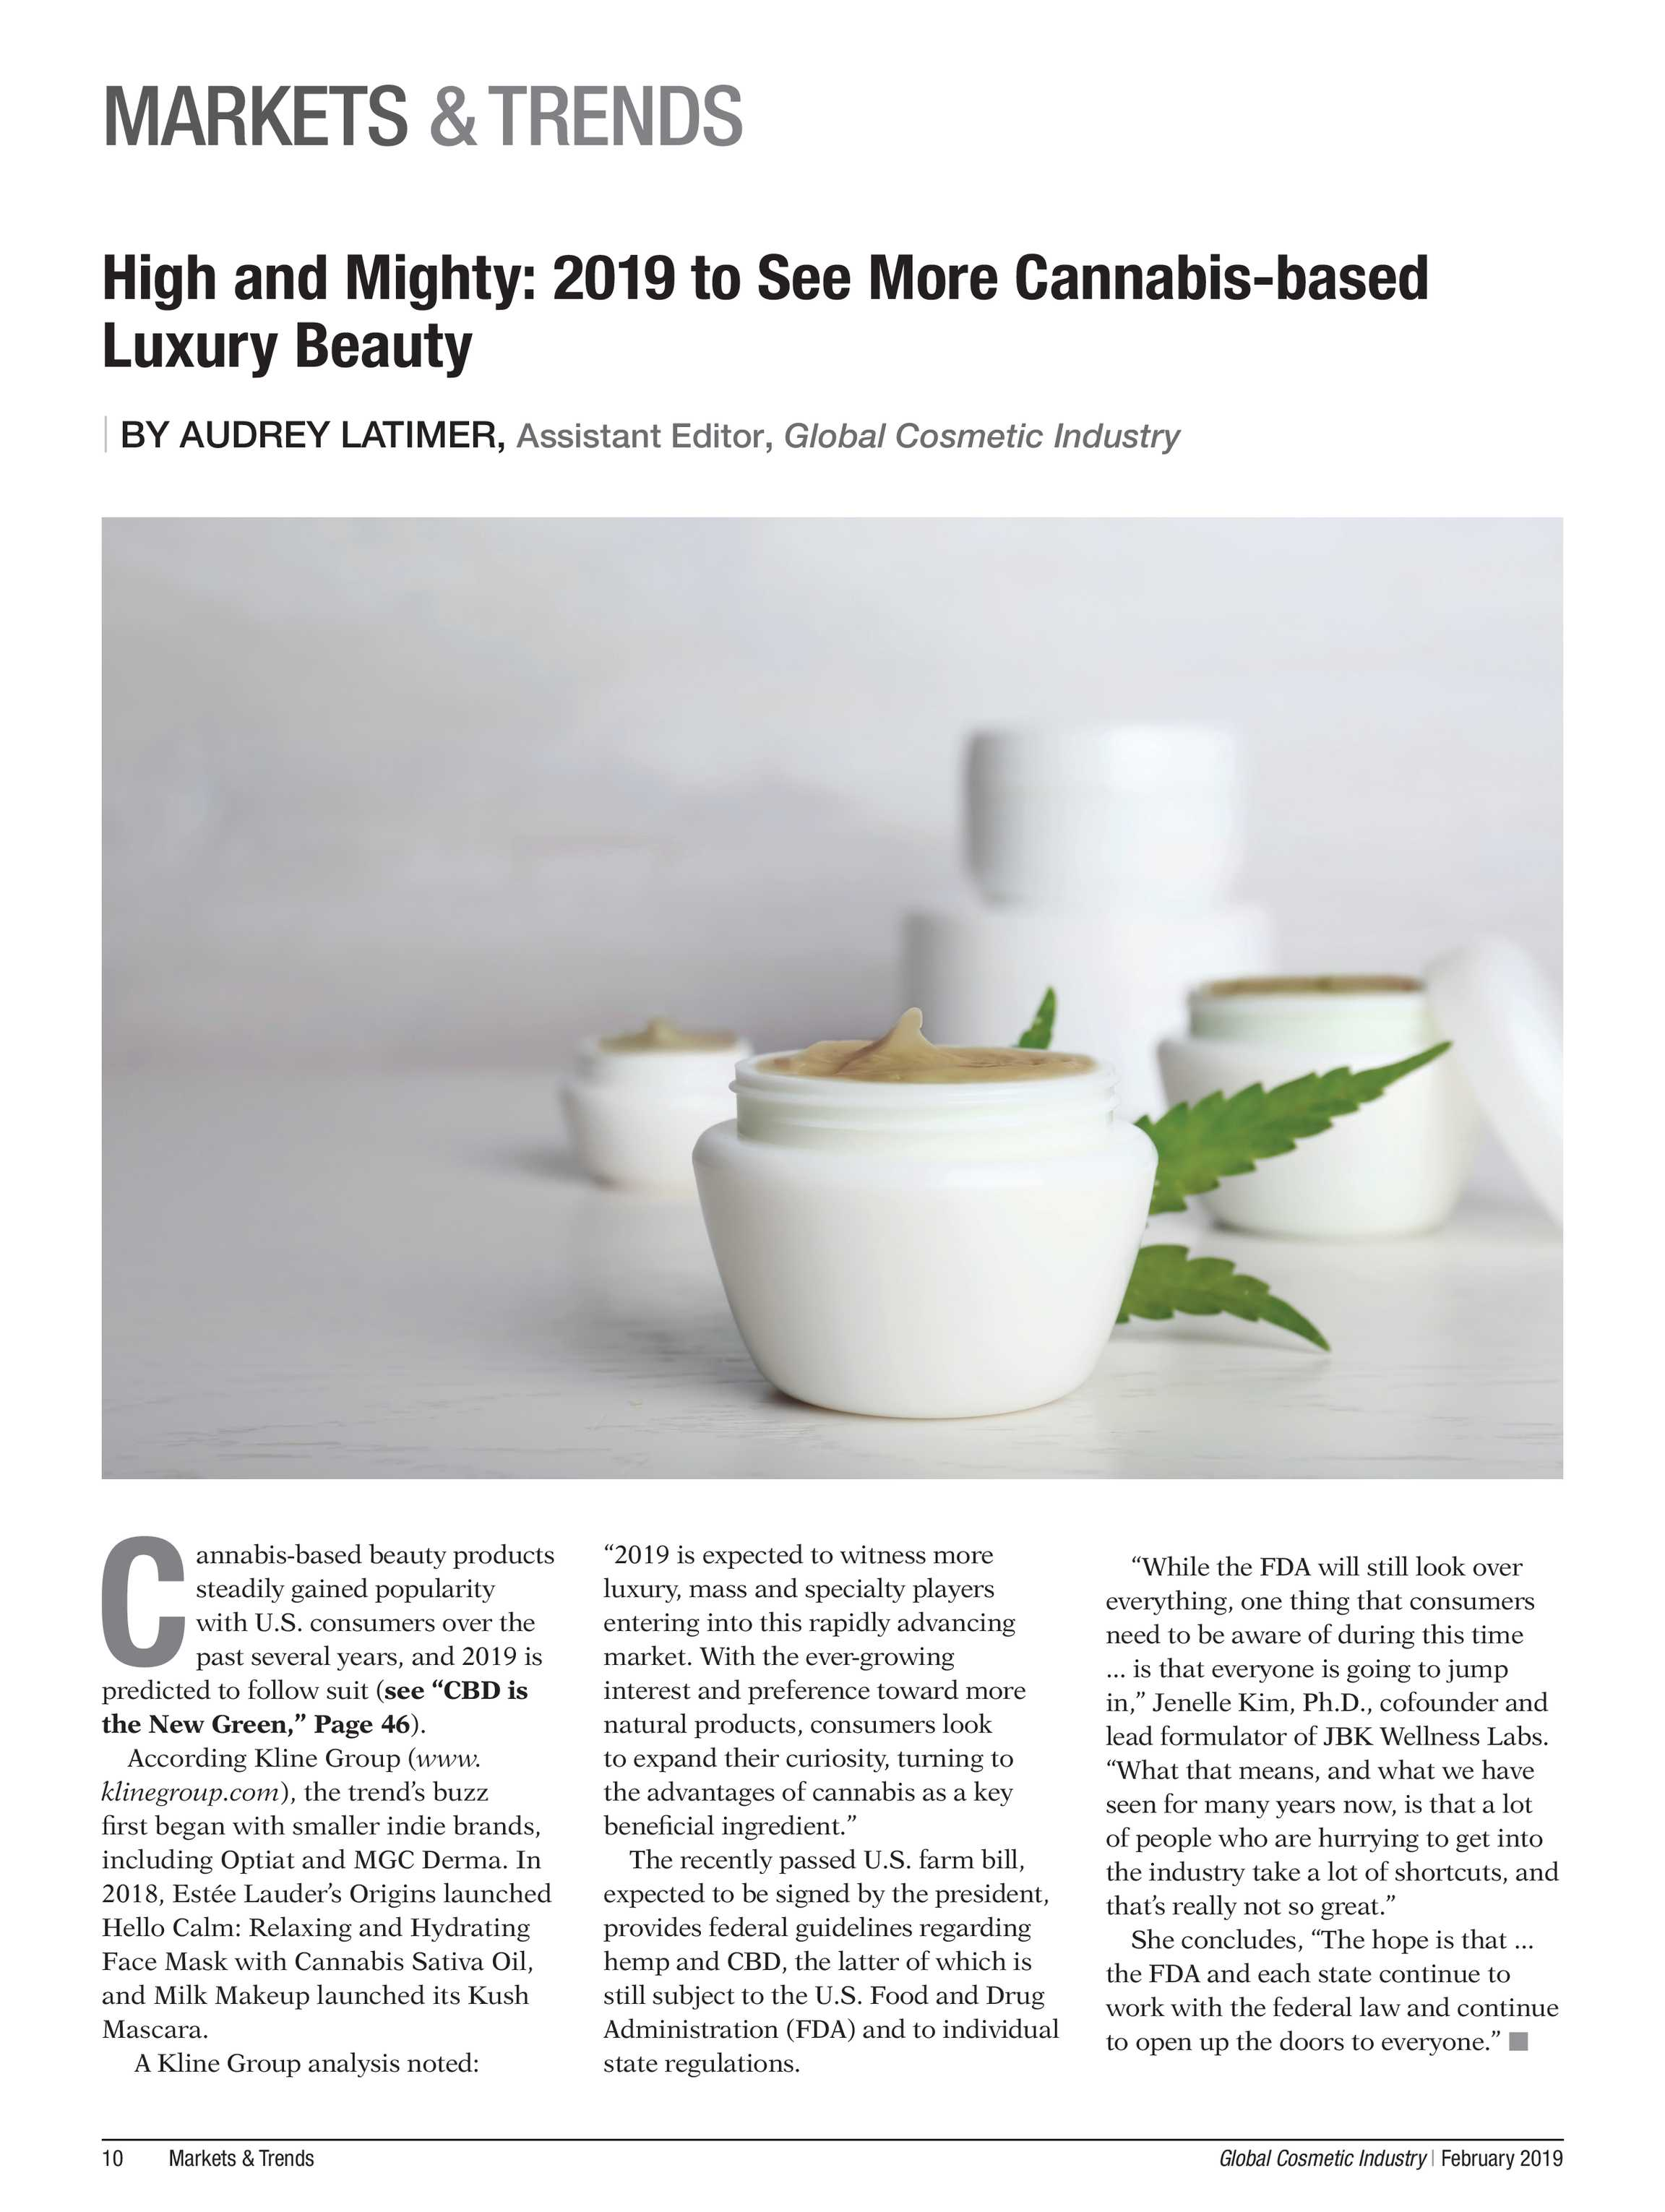 Global Cosmetic Industry Magazine - February 2019 - page 10